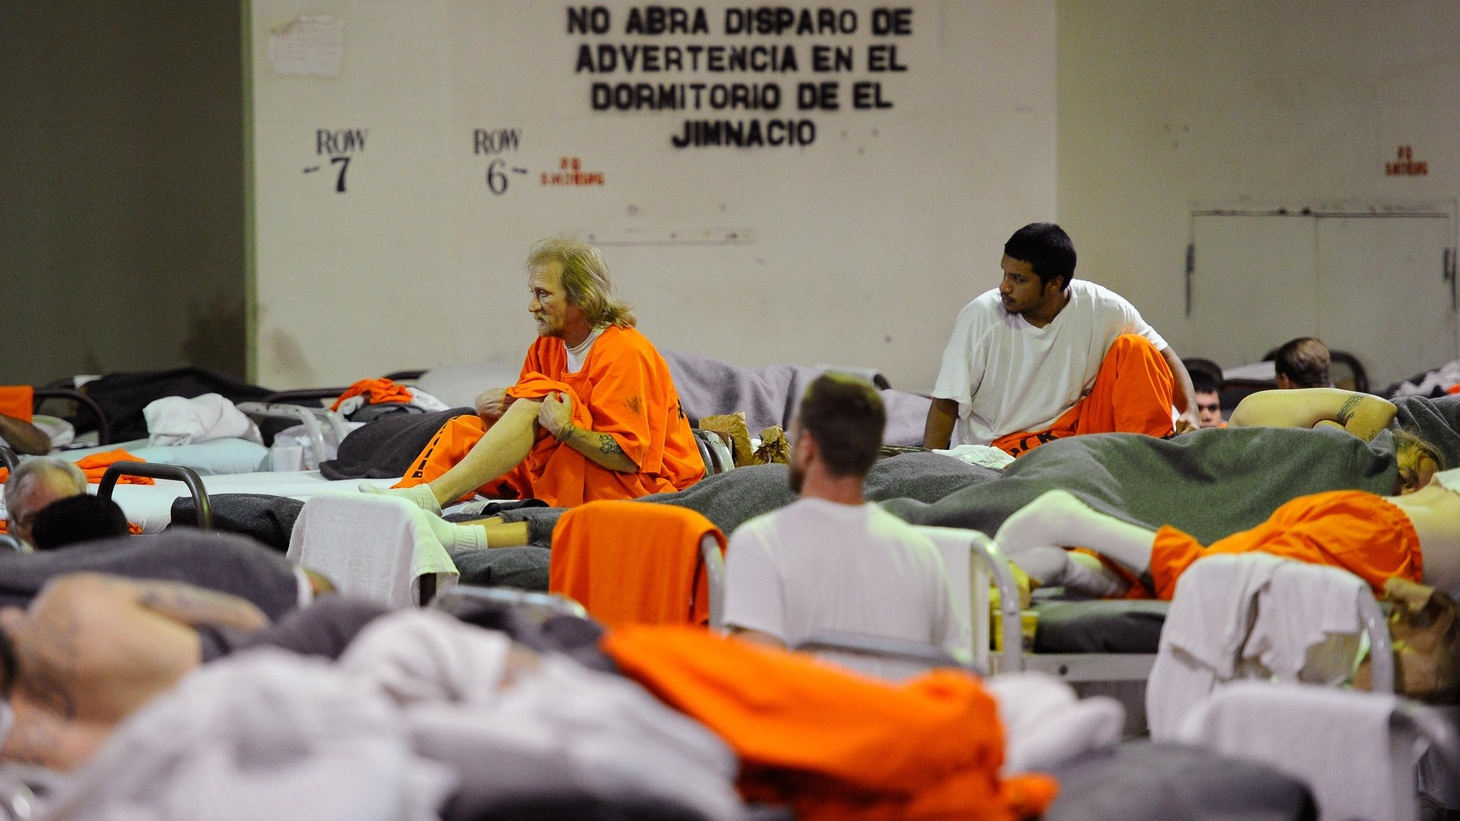 With the US incarcerating more people than any other nation, will other states face similar orders? Even many conservatives say we can't afford more prisons.